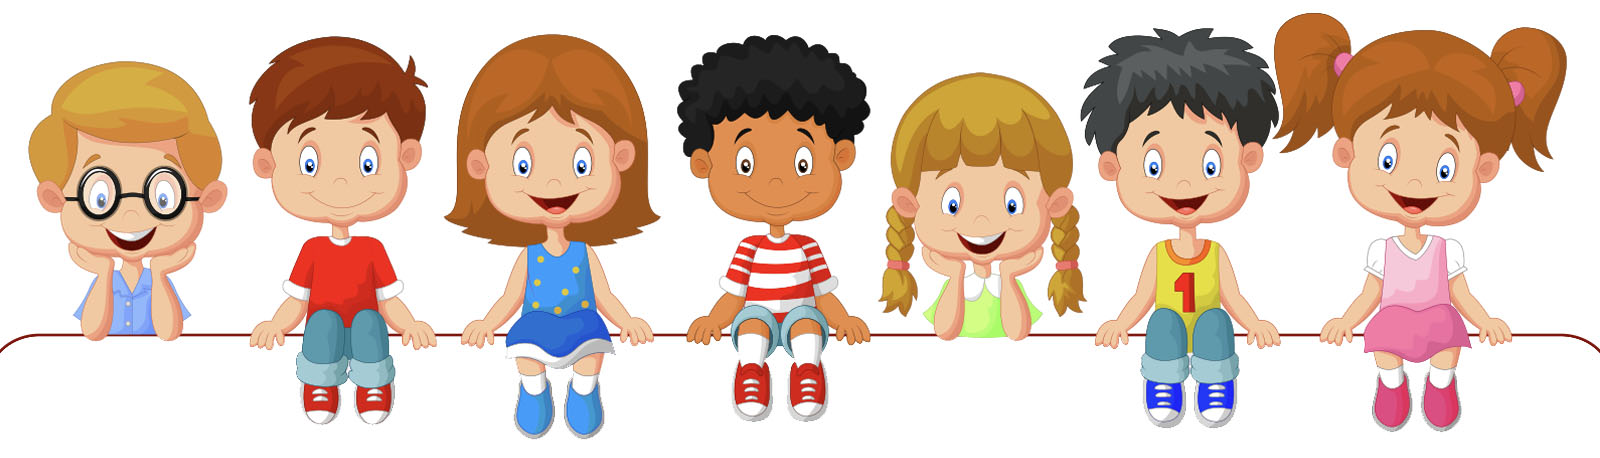 cartoon of kids smiling